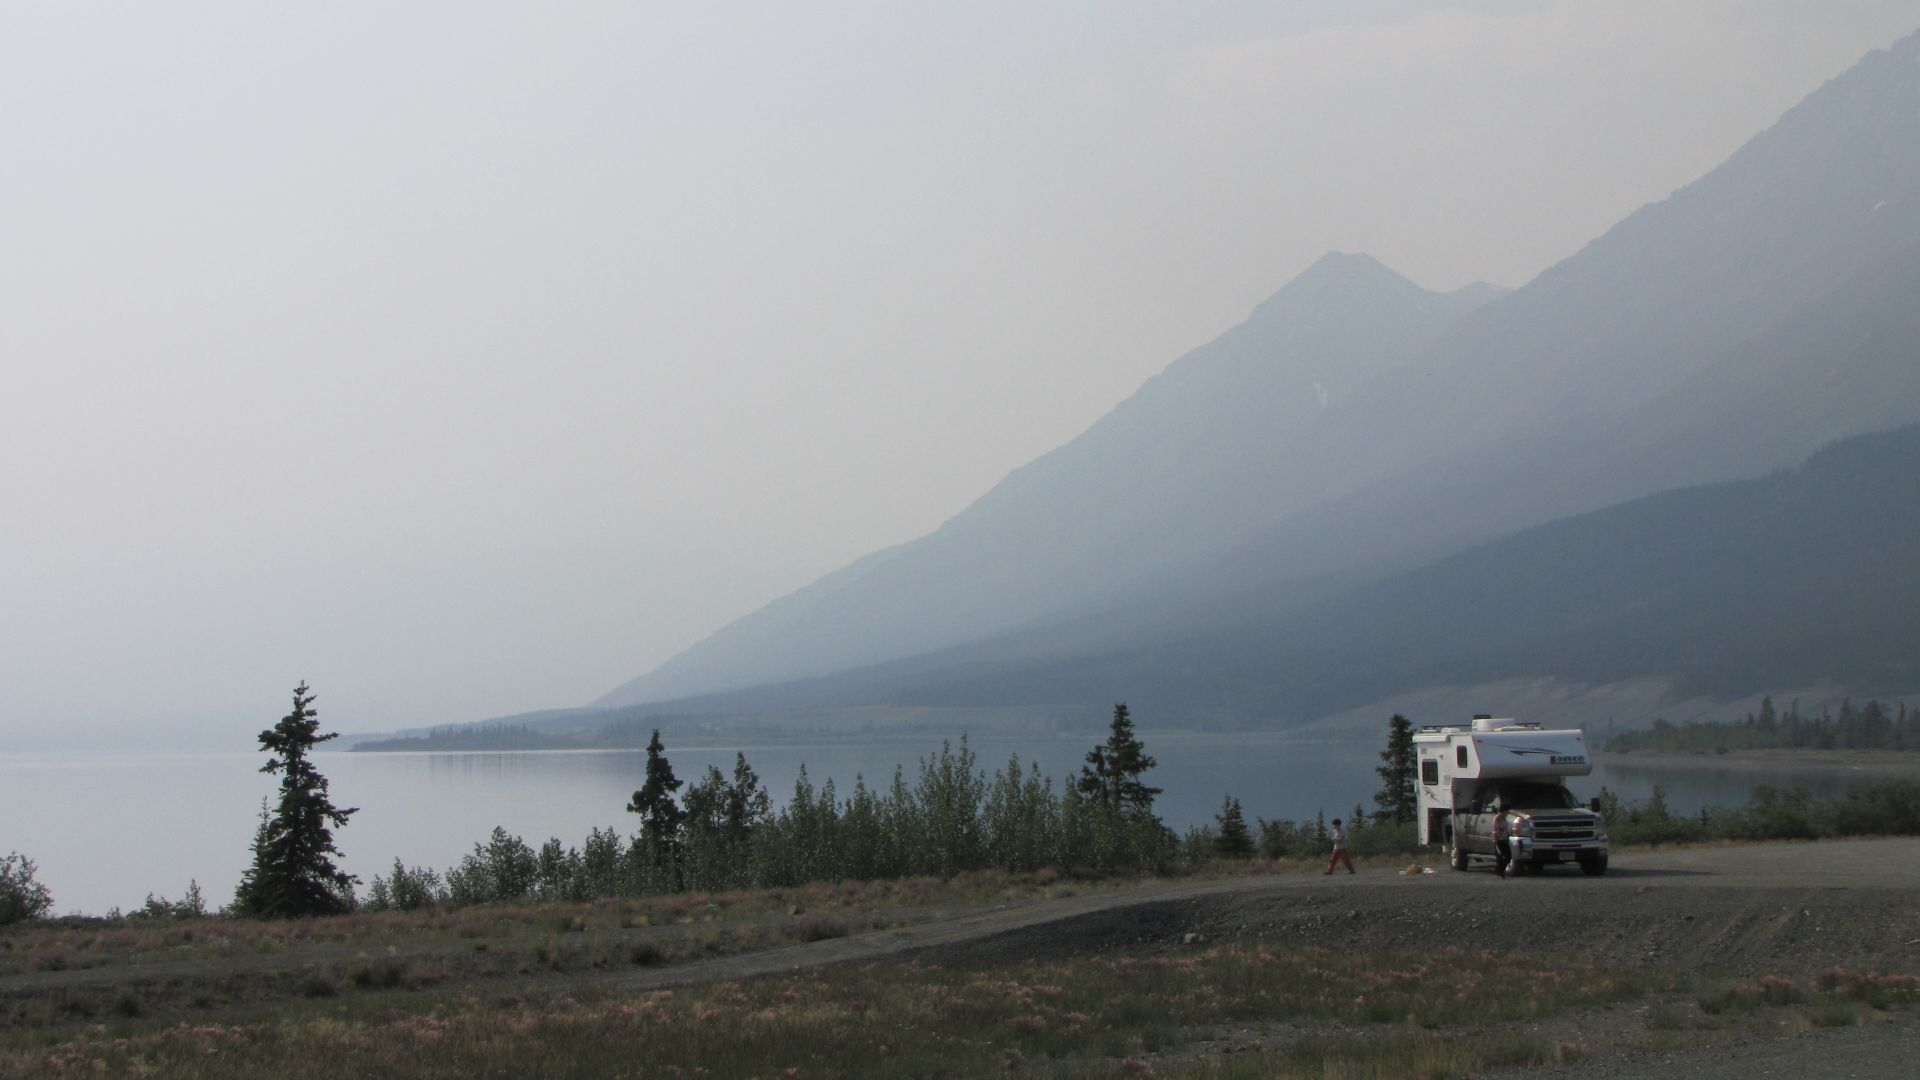 Kluane Lake, YT, Canada - RV, biker & cyclists heaven